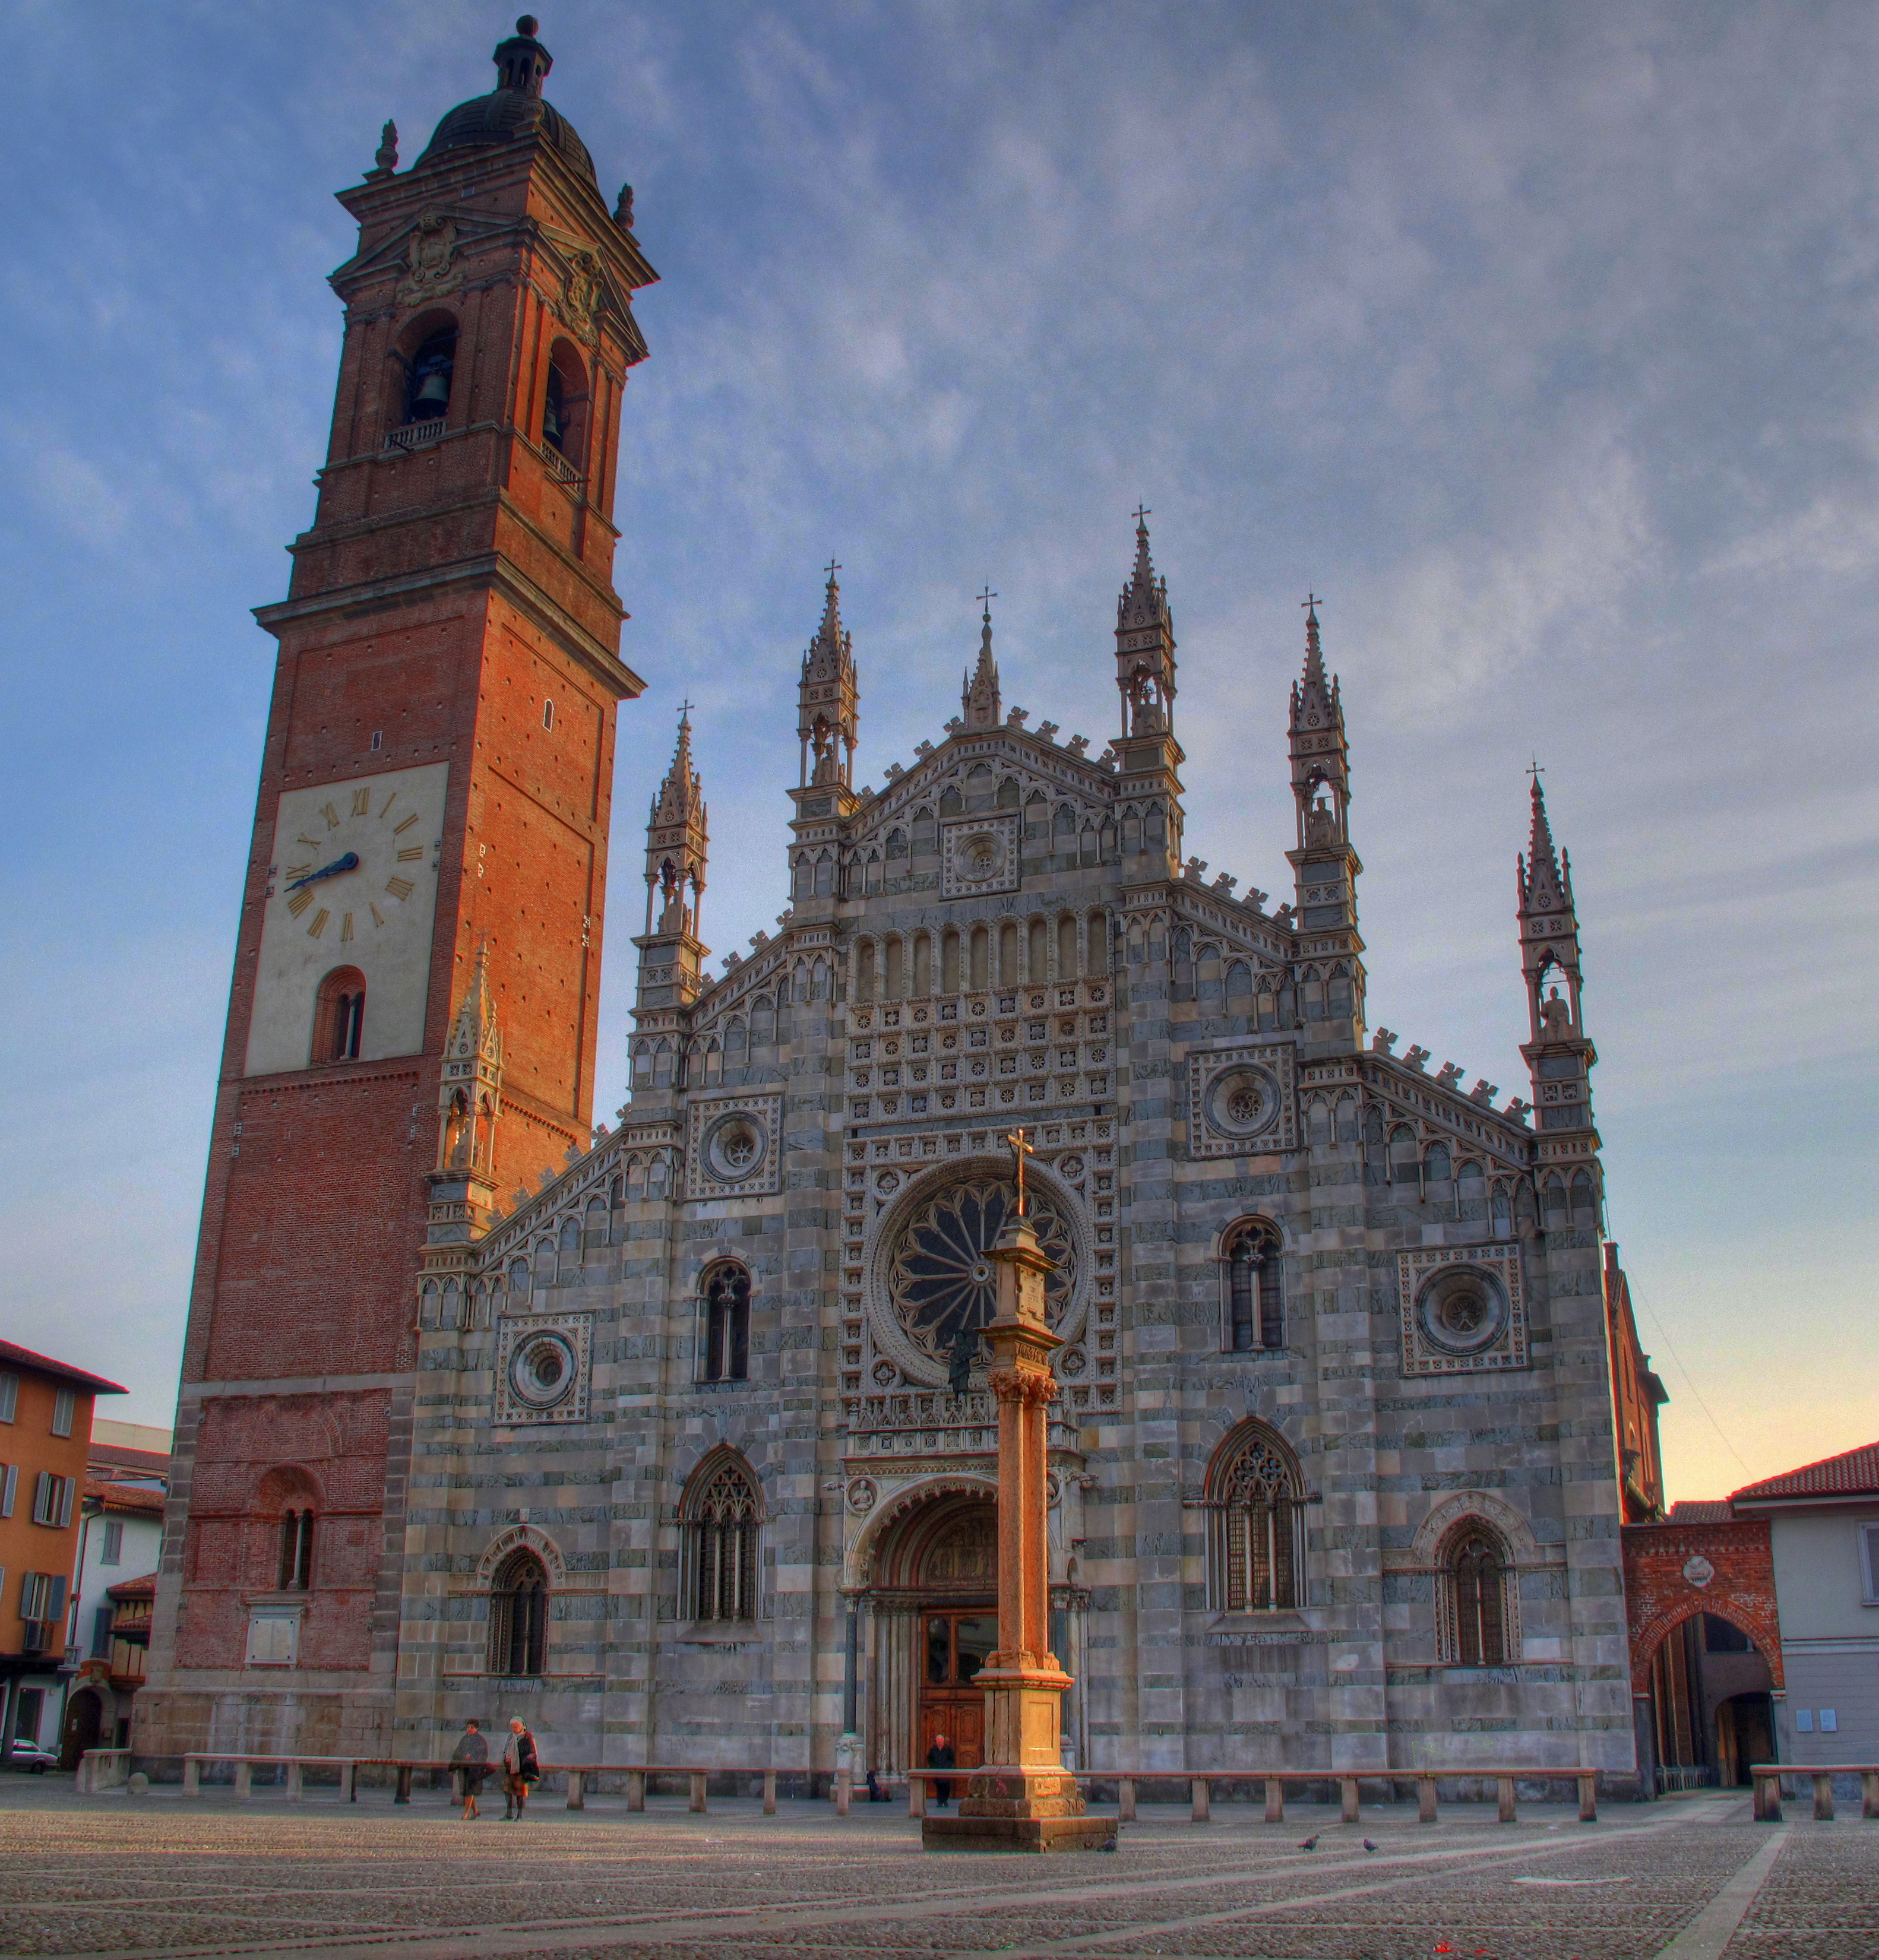 Monza Italy  city images : Duomo Monza italy Wikipedia, the free encyclopedia